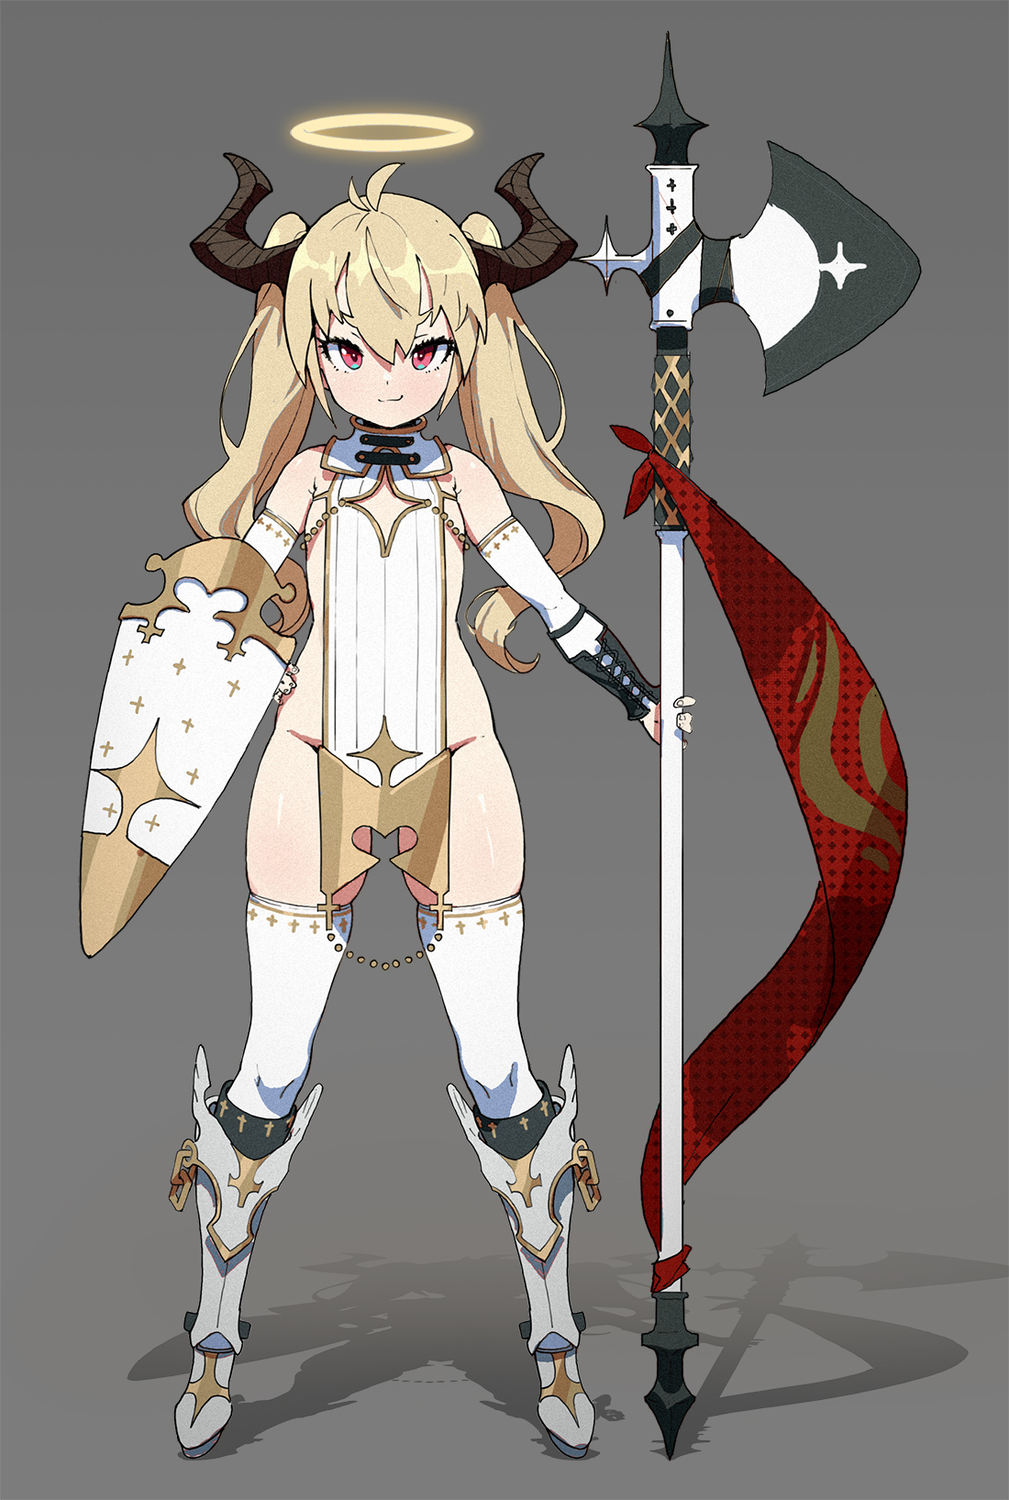 1girl armoured_boots bare_shoulders blush boots elbow_gloves flat_chest gloves groin hair_between_eyes halberd halo hand_on_hip highres holding holding_halberd holding_weapon horns original polearm red_eyes shield smile solo tabard thighhighs twin_tails waterkuma weapon white_background white_legwear